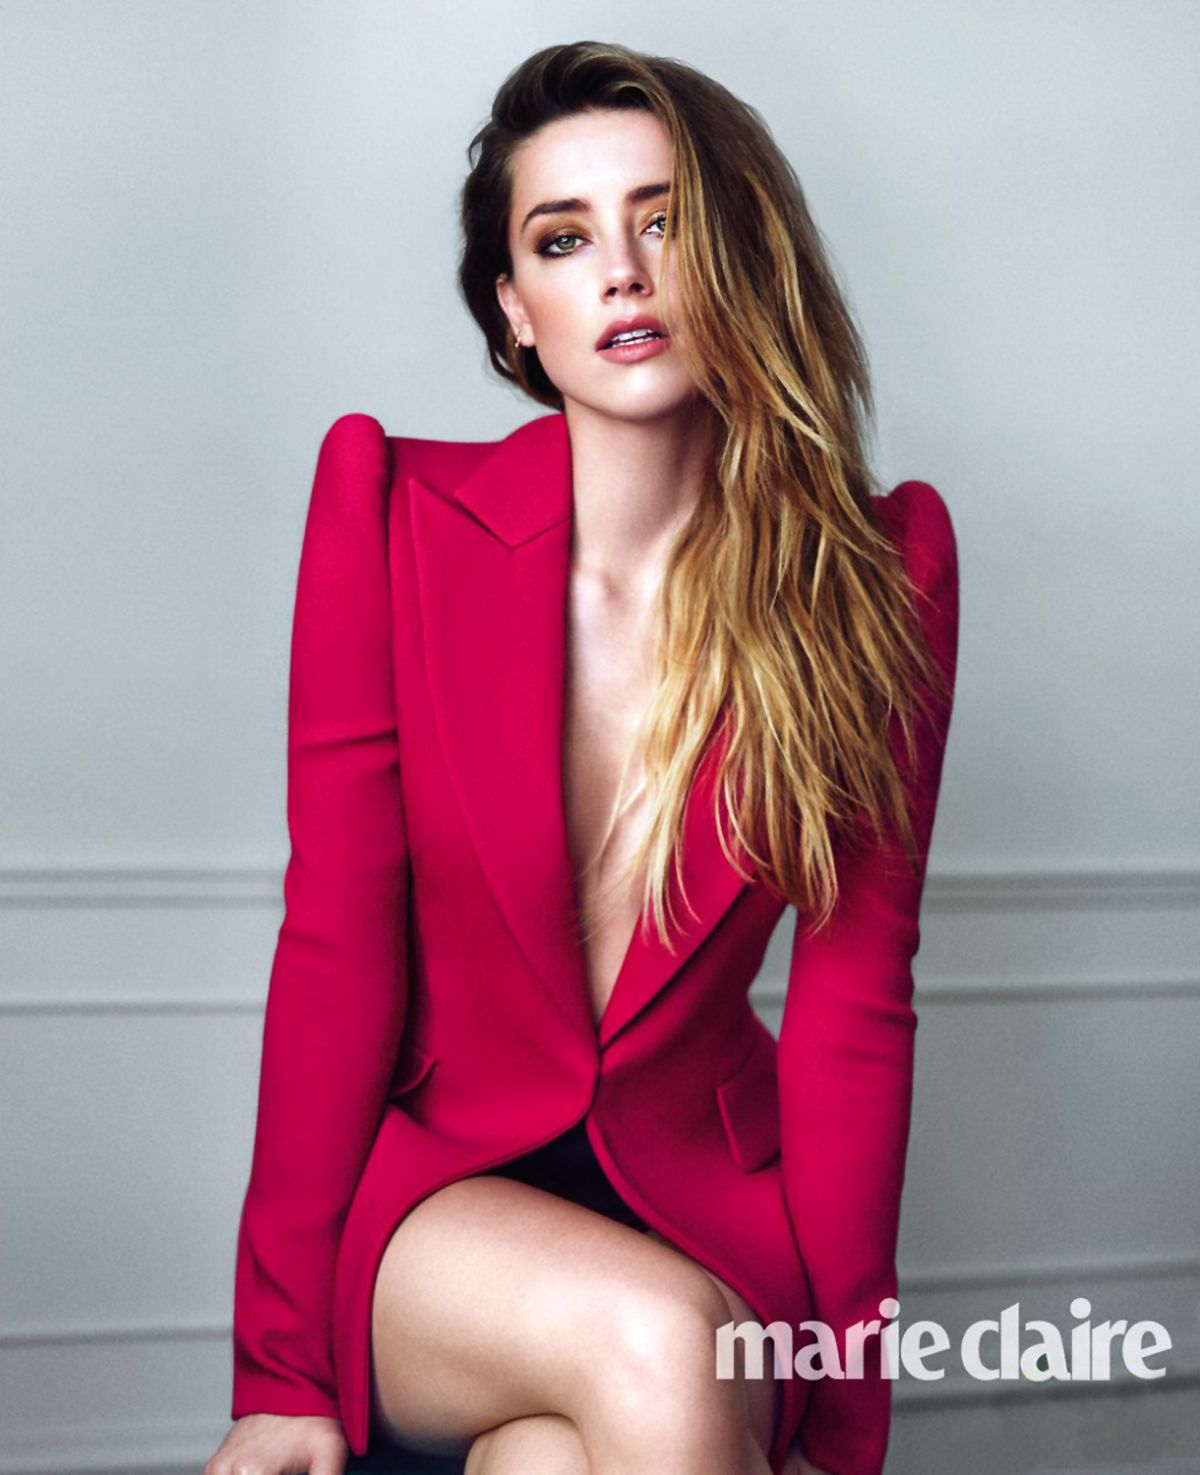 AMBER HEARD in Marie Claire Magazine, December 2015 Issue